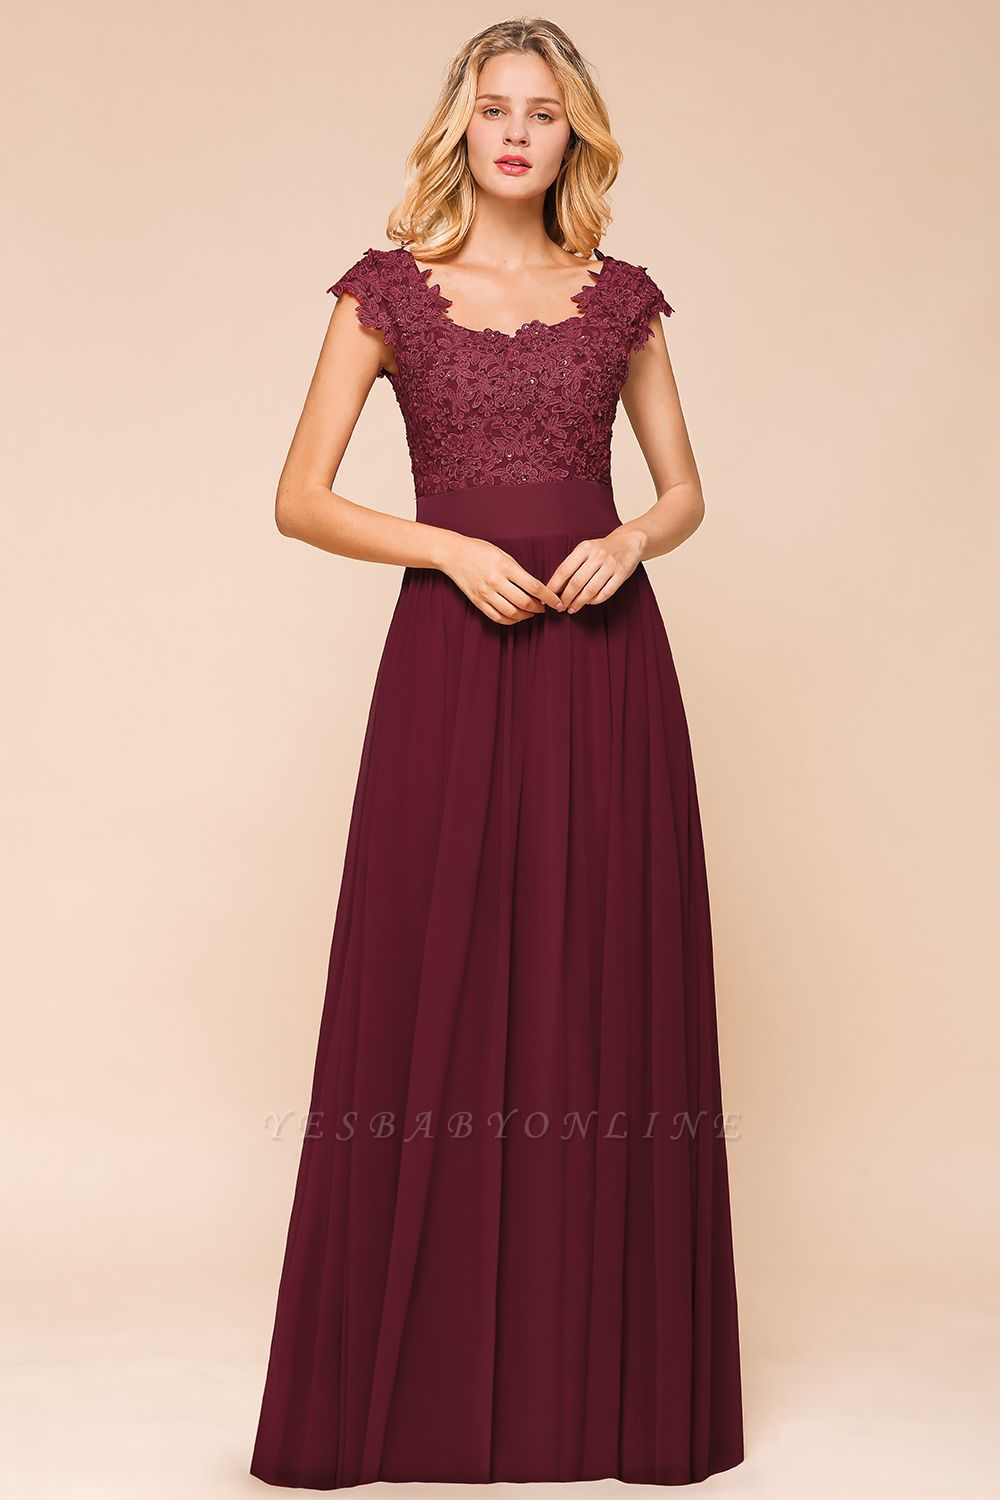 Cap Sleeve Scoop Lace Beading Floor Length Formal Evening Dresses | A Line Chiffon Sexy Prom Dresses